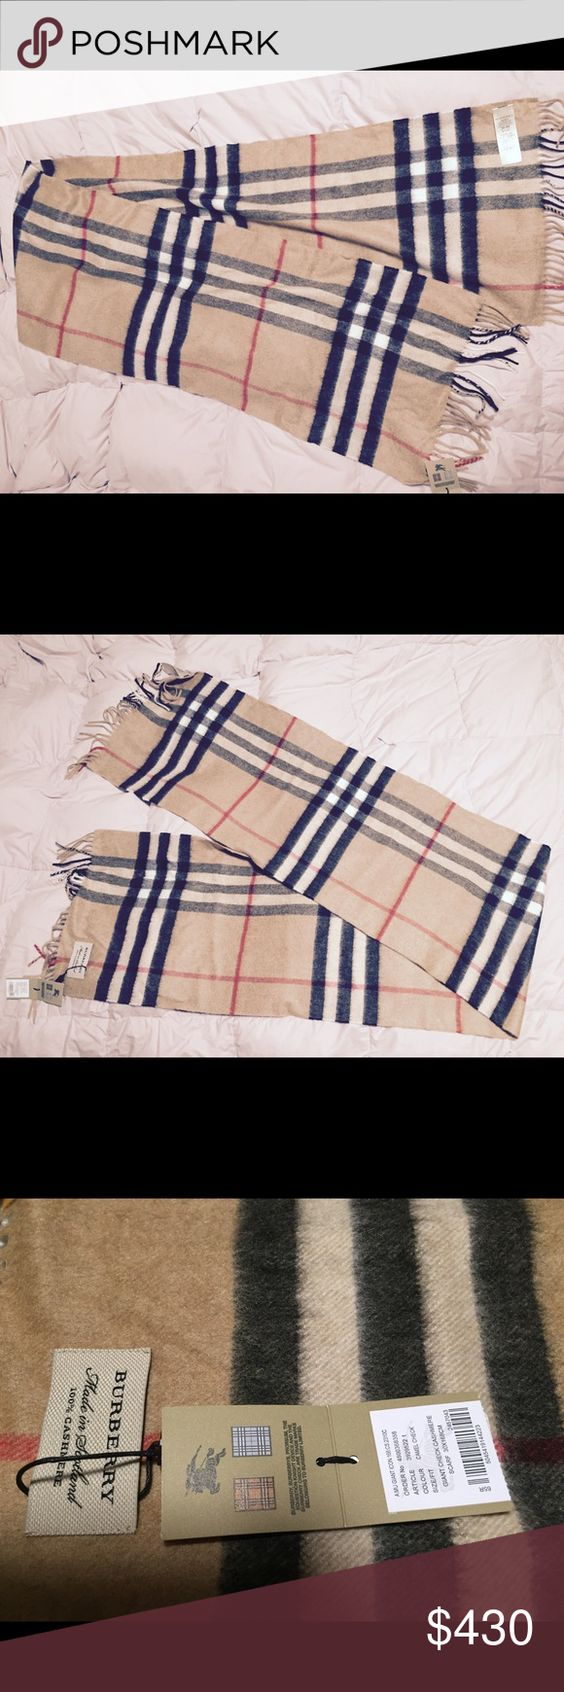 """Burberry Giant Icon Check Cashmere Scarf Brand New With Tag! Authentic Burberry Giant Icon Check Cashmere Scarf - Carmel Check 12""""W x 66""""L 🅿️🅿️available Burberry Accessories Scarves & Wraps"""